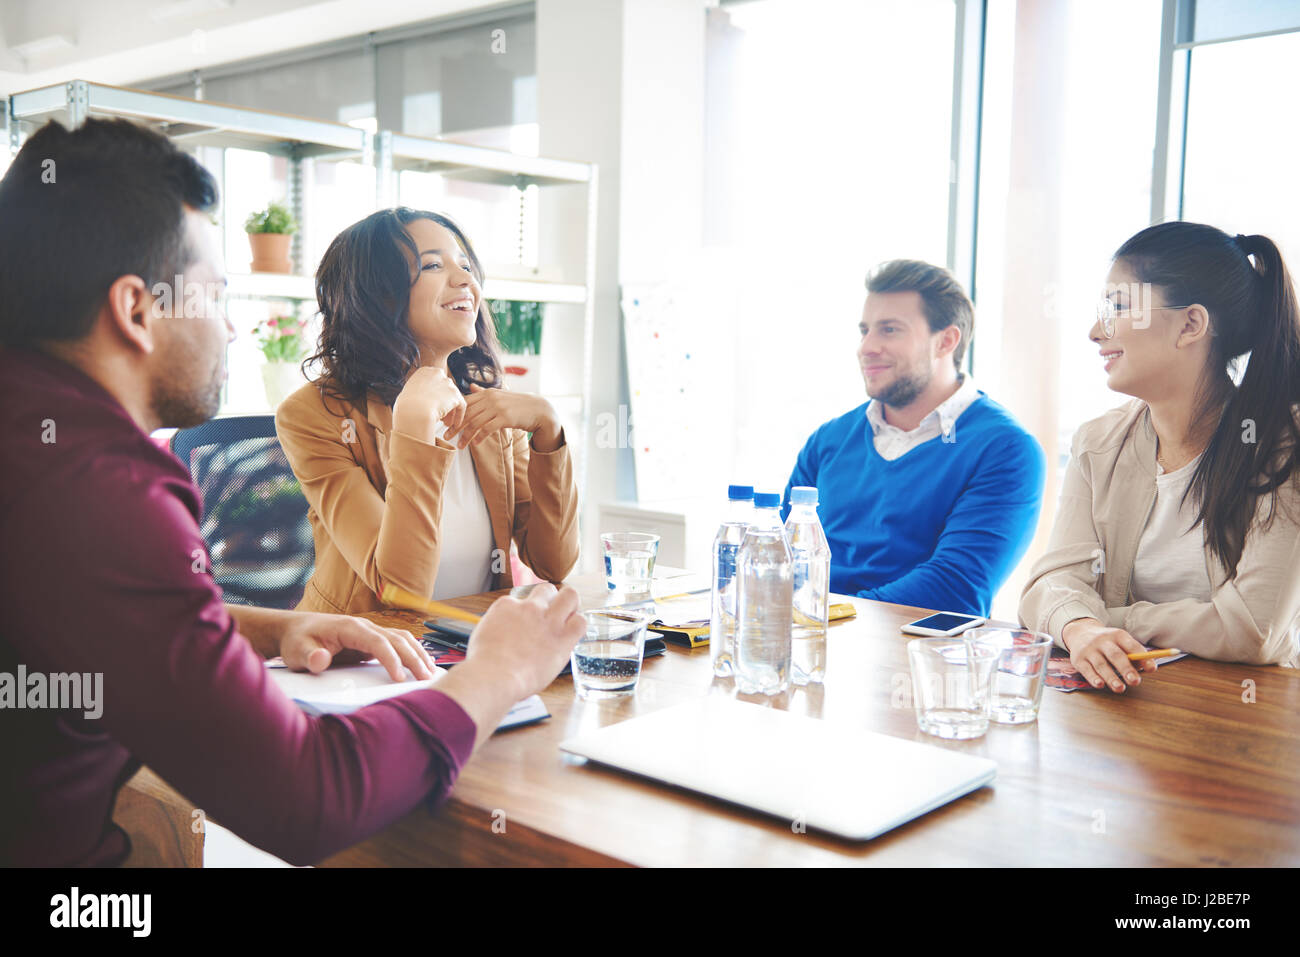 Group of business people discussing at work - Stock Image